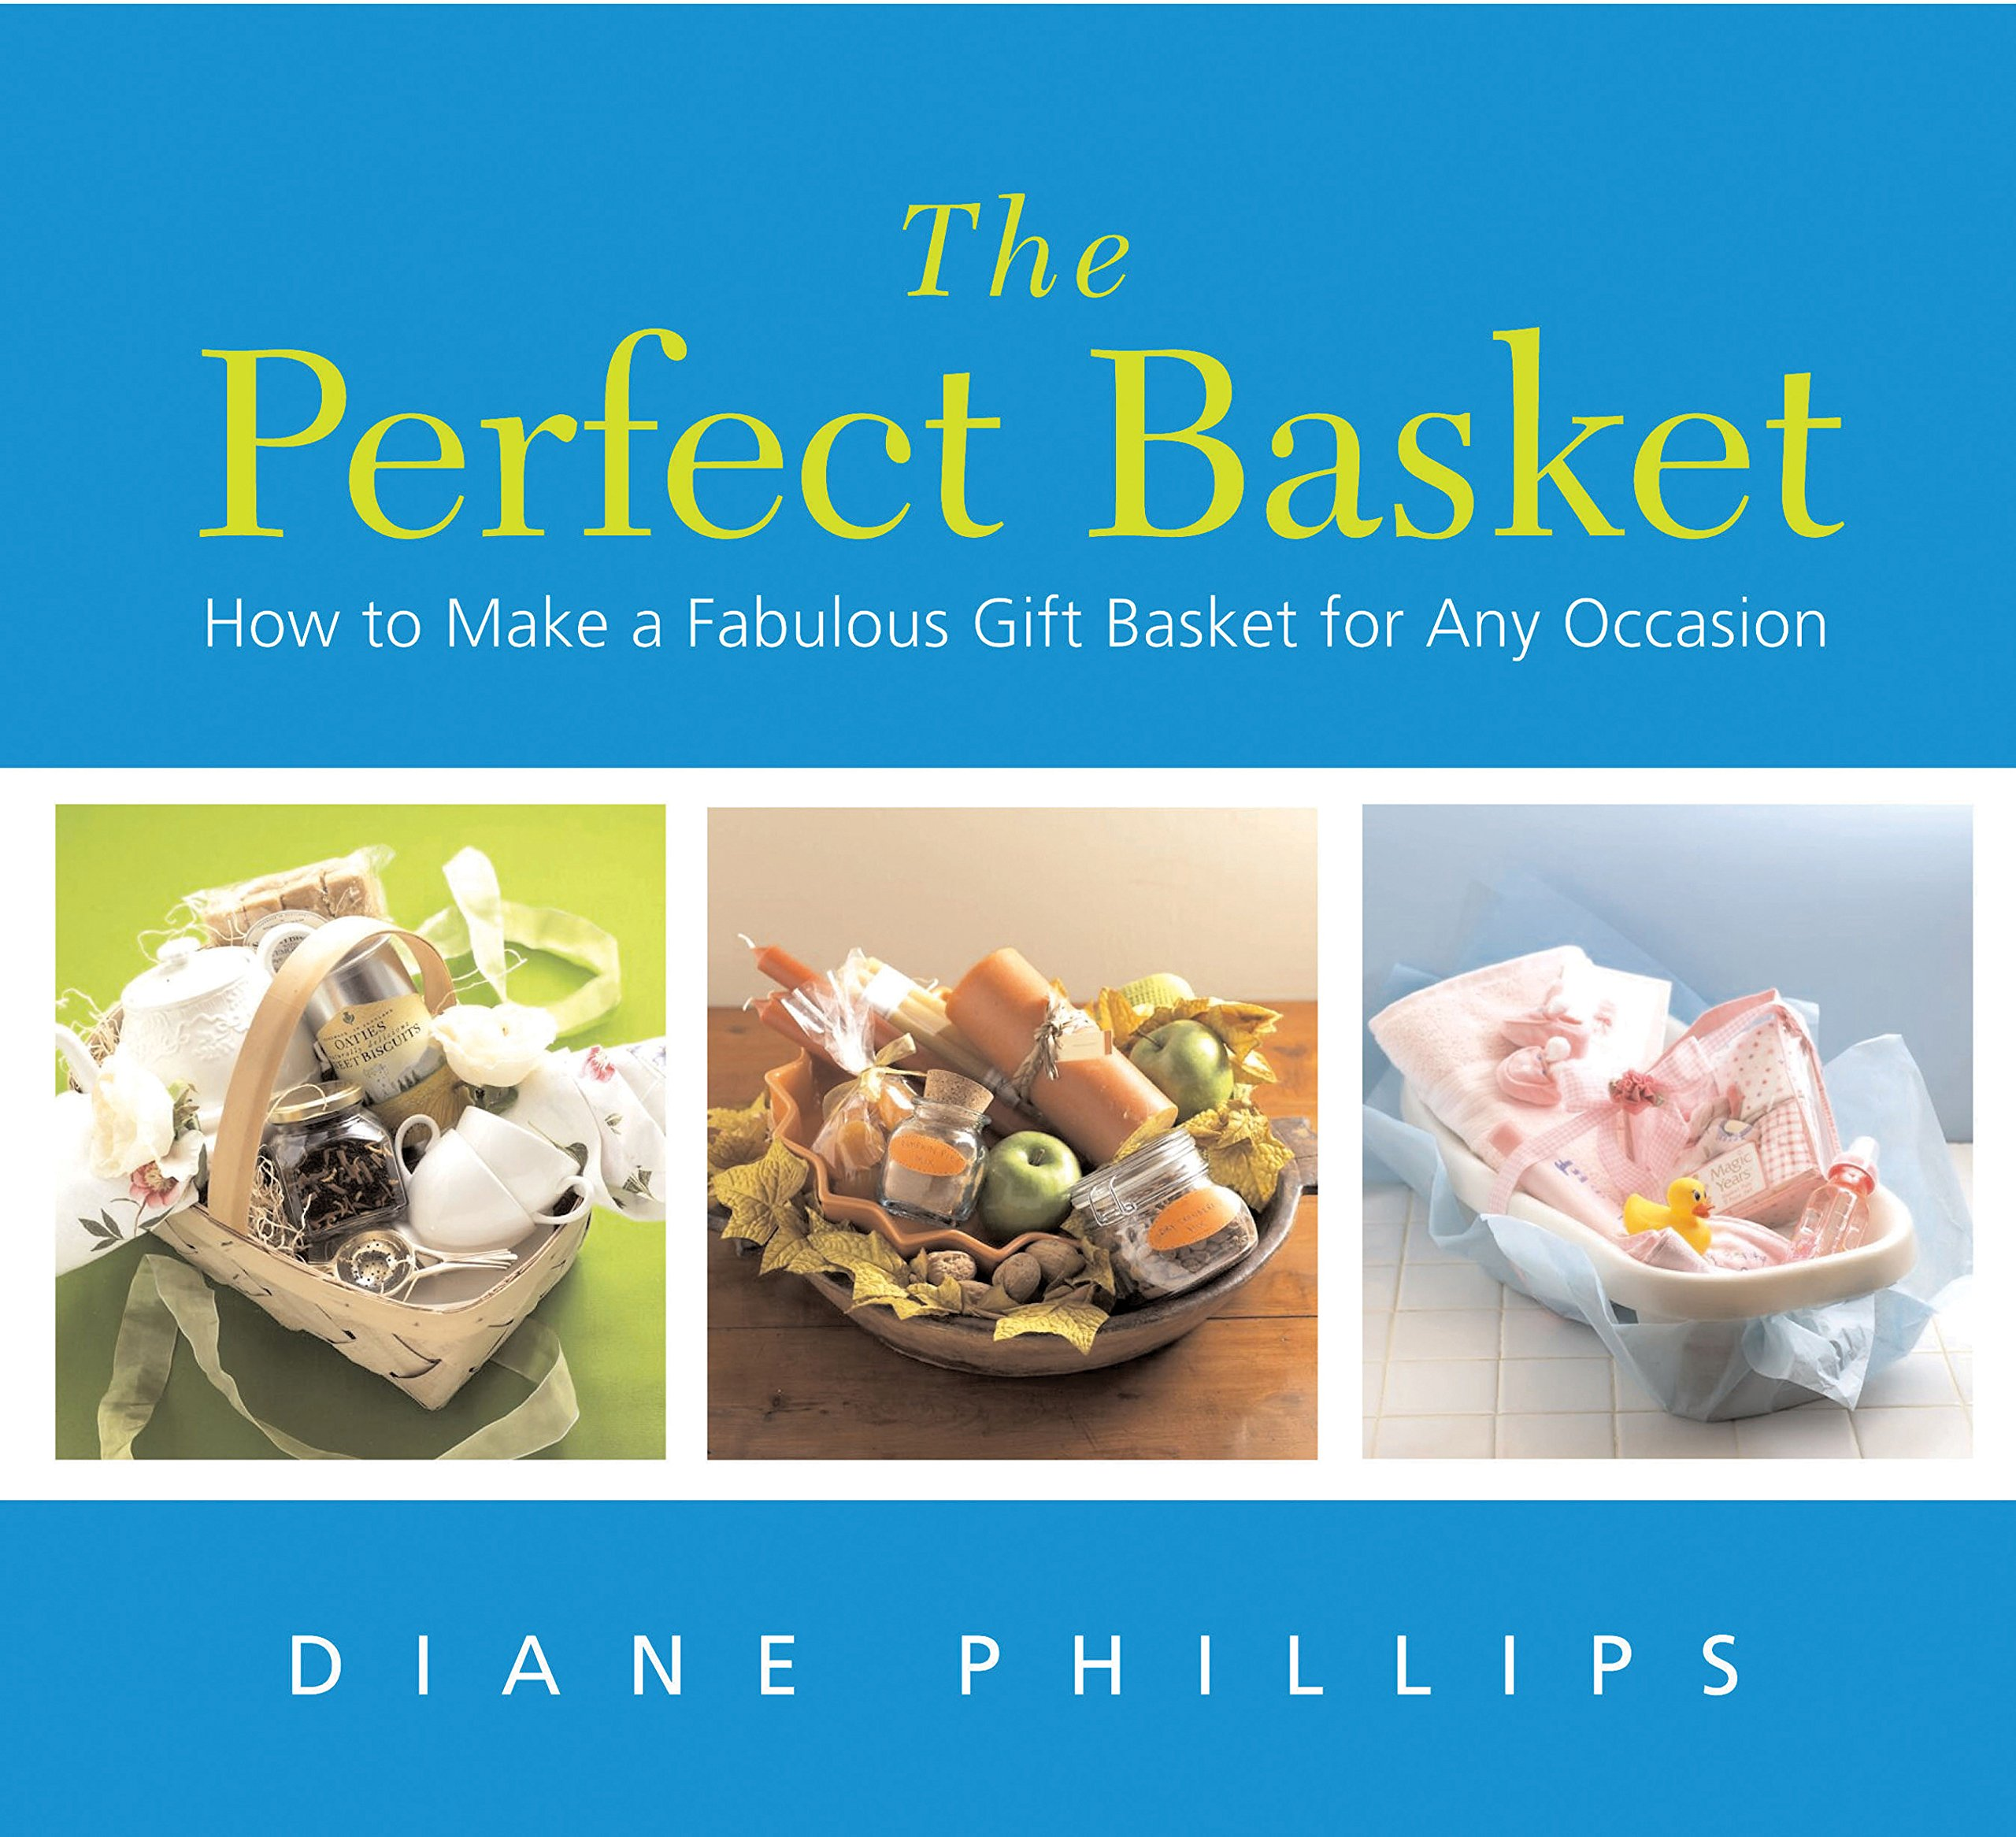 the-perfect-basket-how-to-make-a-fabulous-gift-basket-for-any-occasion